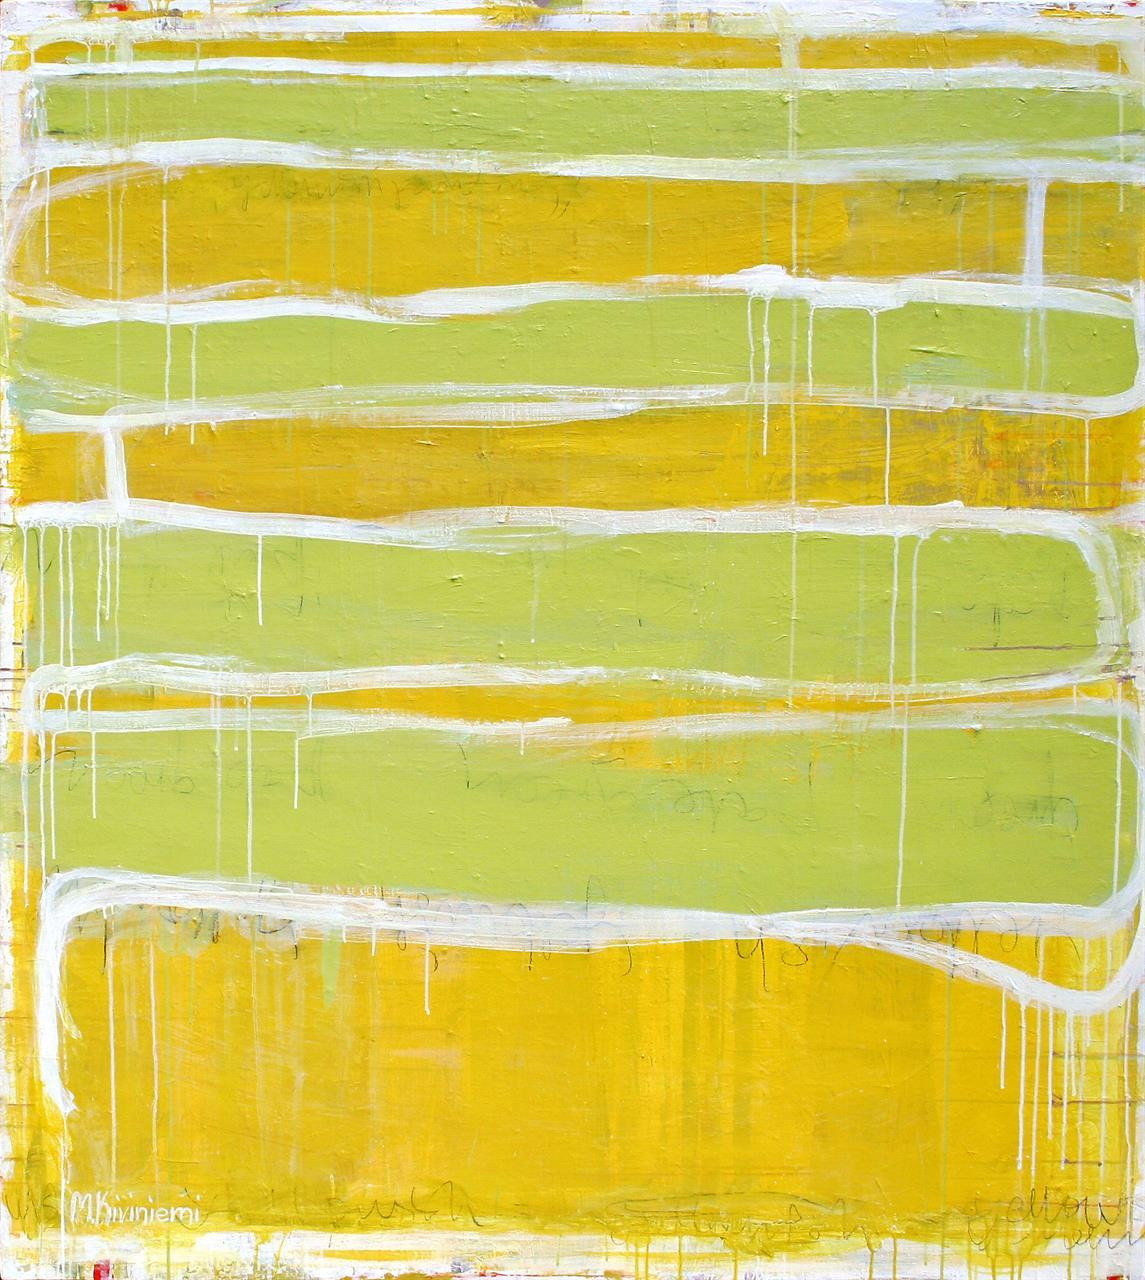 MY YELLOWISH PAINTING 145x130cm 2010